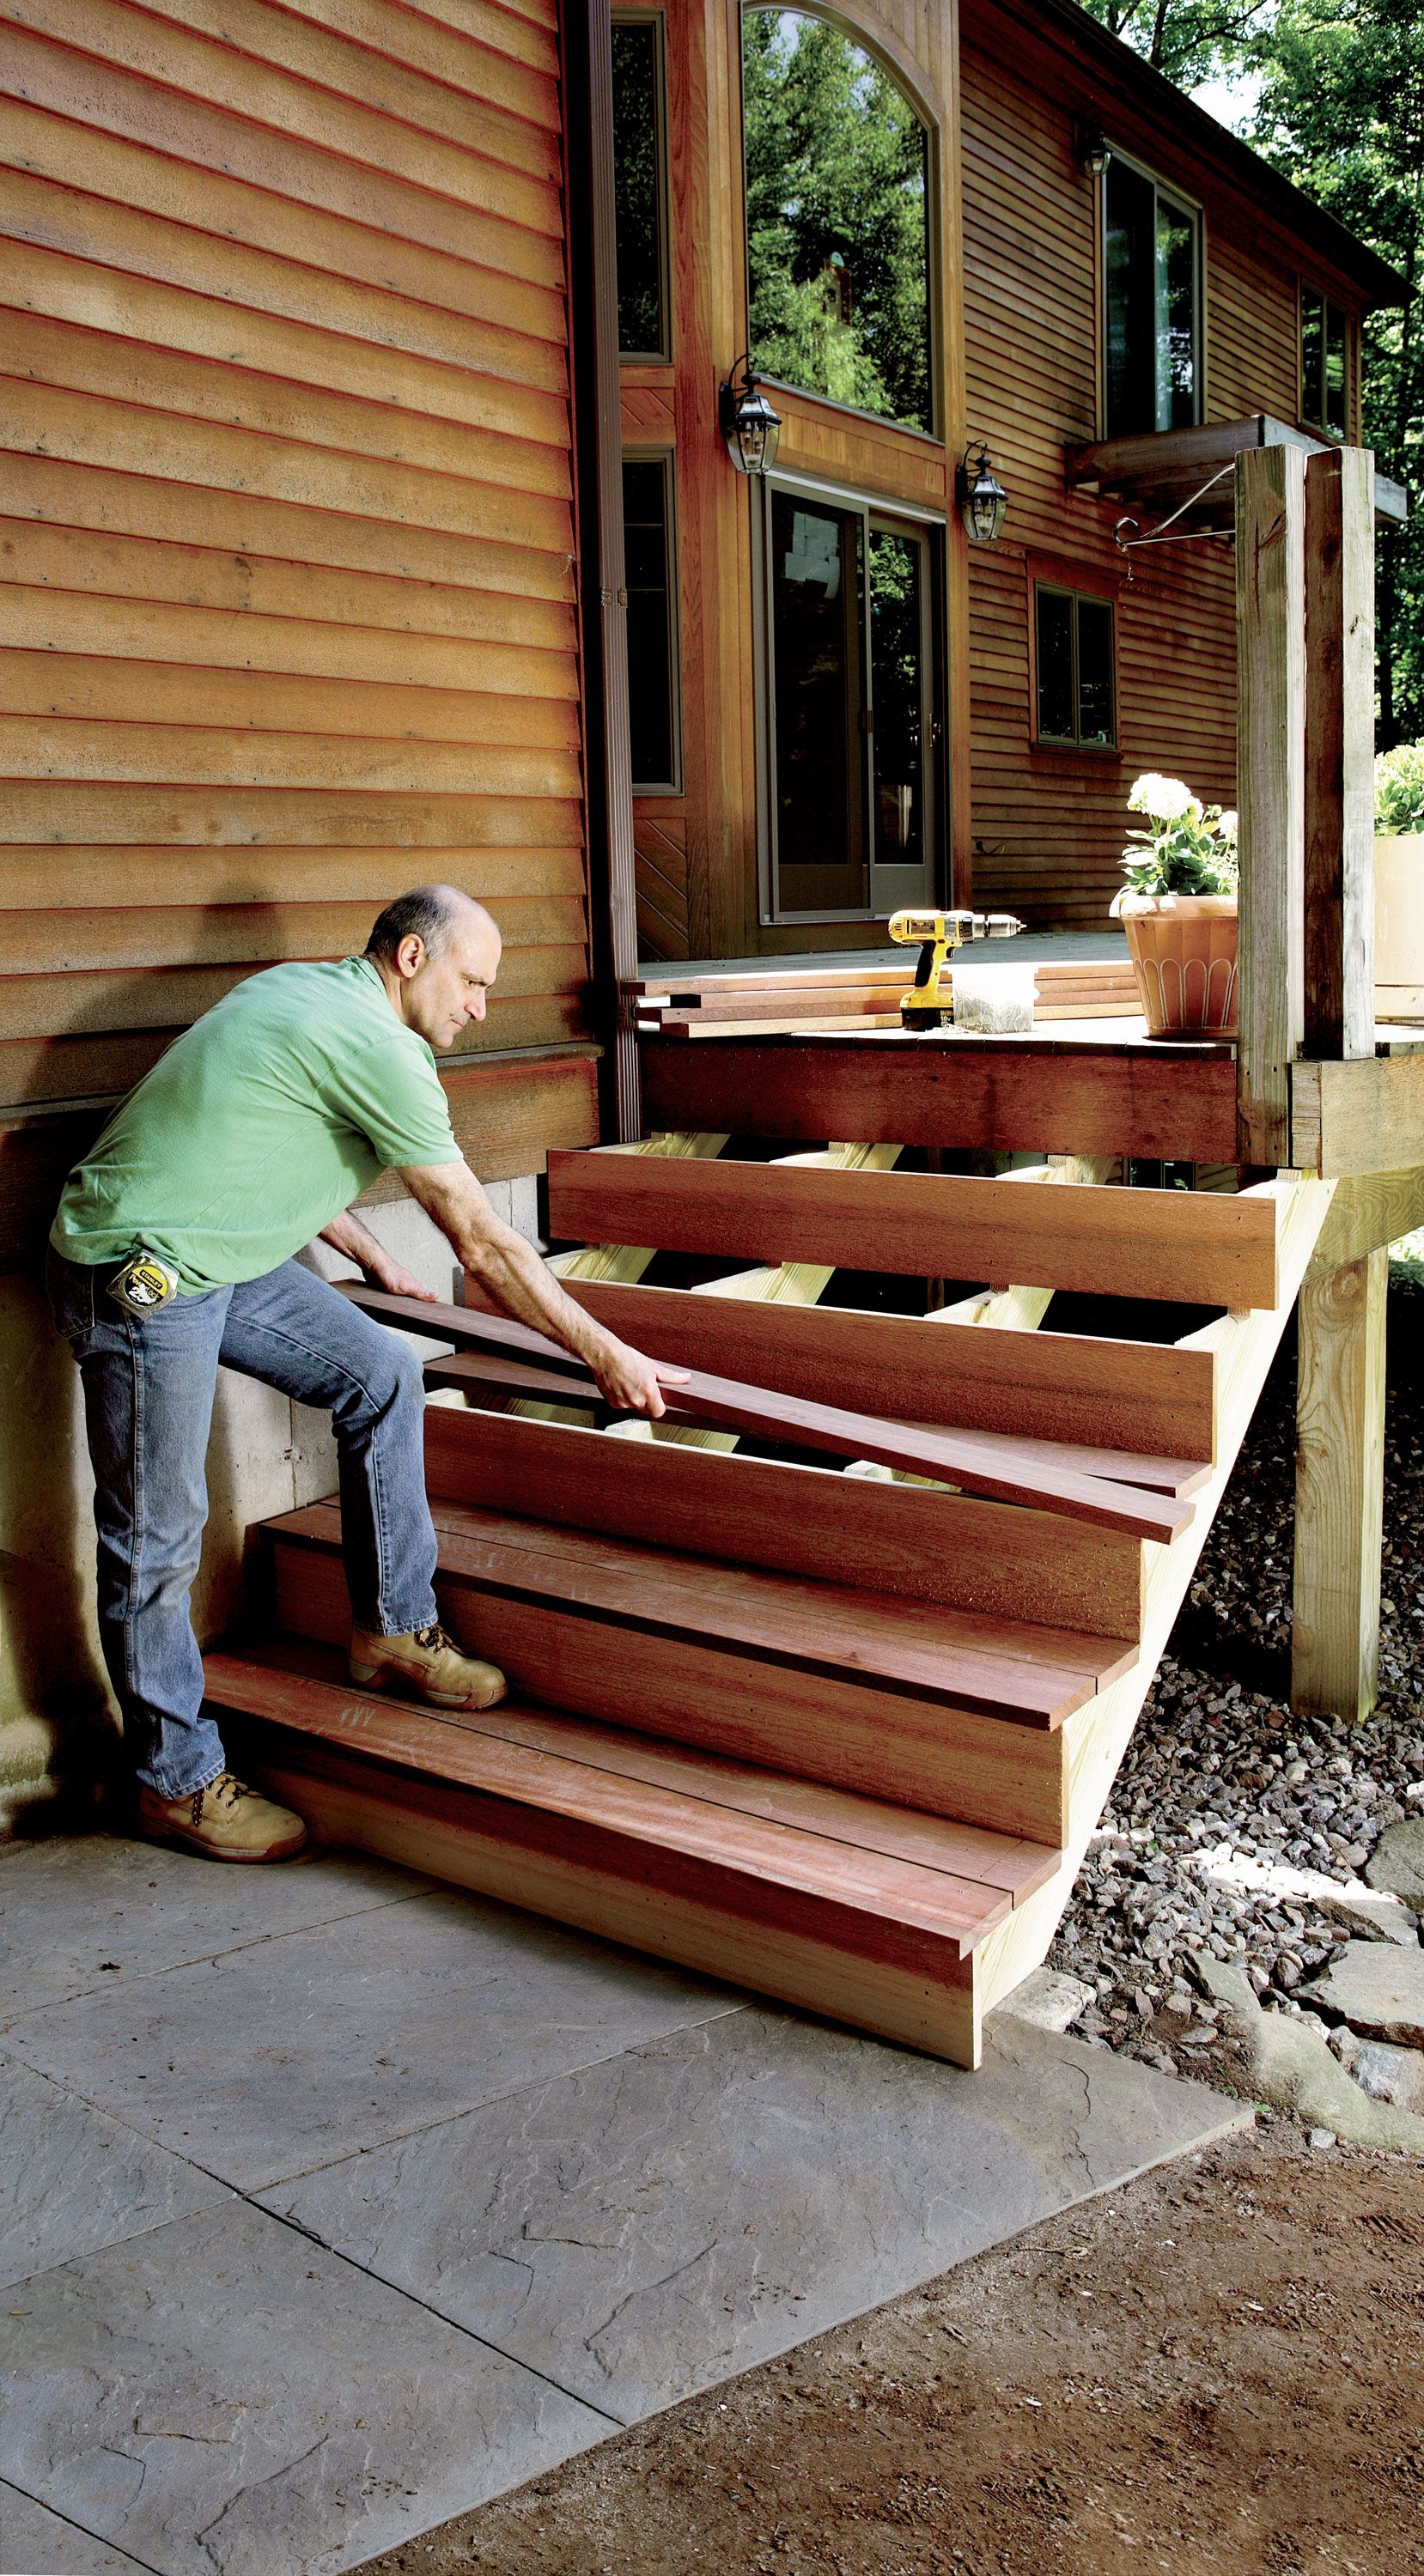 How To Build Stairs Stairs Design Plans | Outdoor Steps Design For House | Deck | Beautiful | Unique Outdoor | Brick | Farm House Wide Front Porch